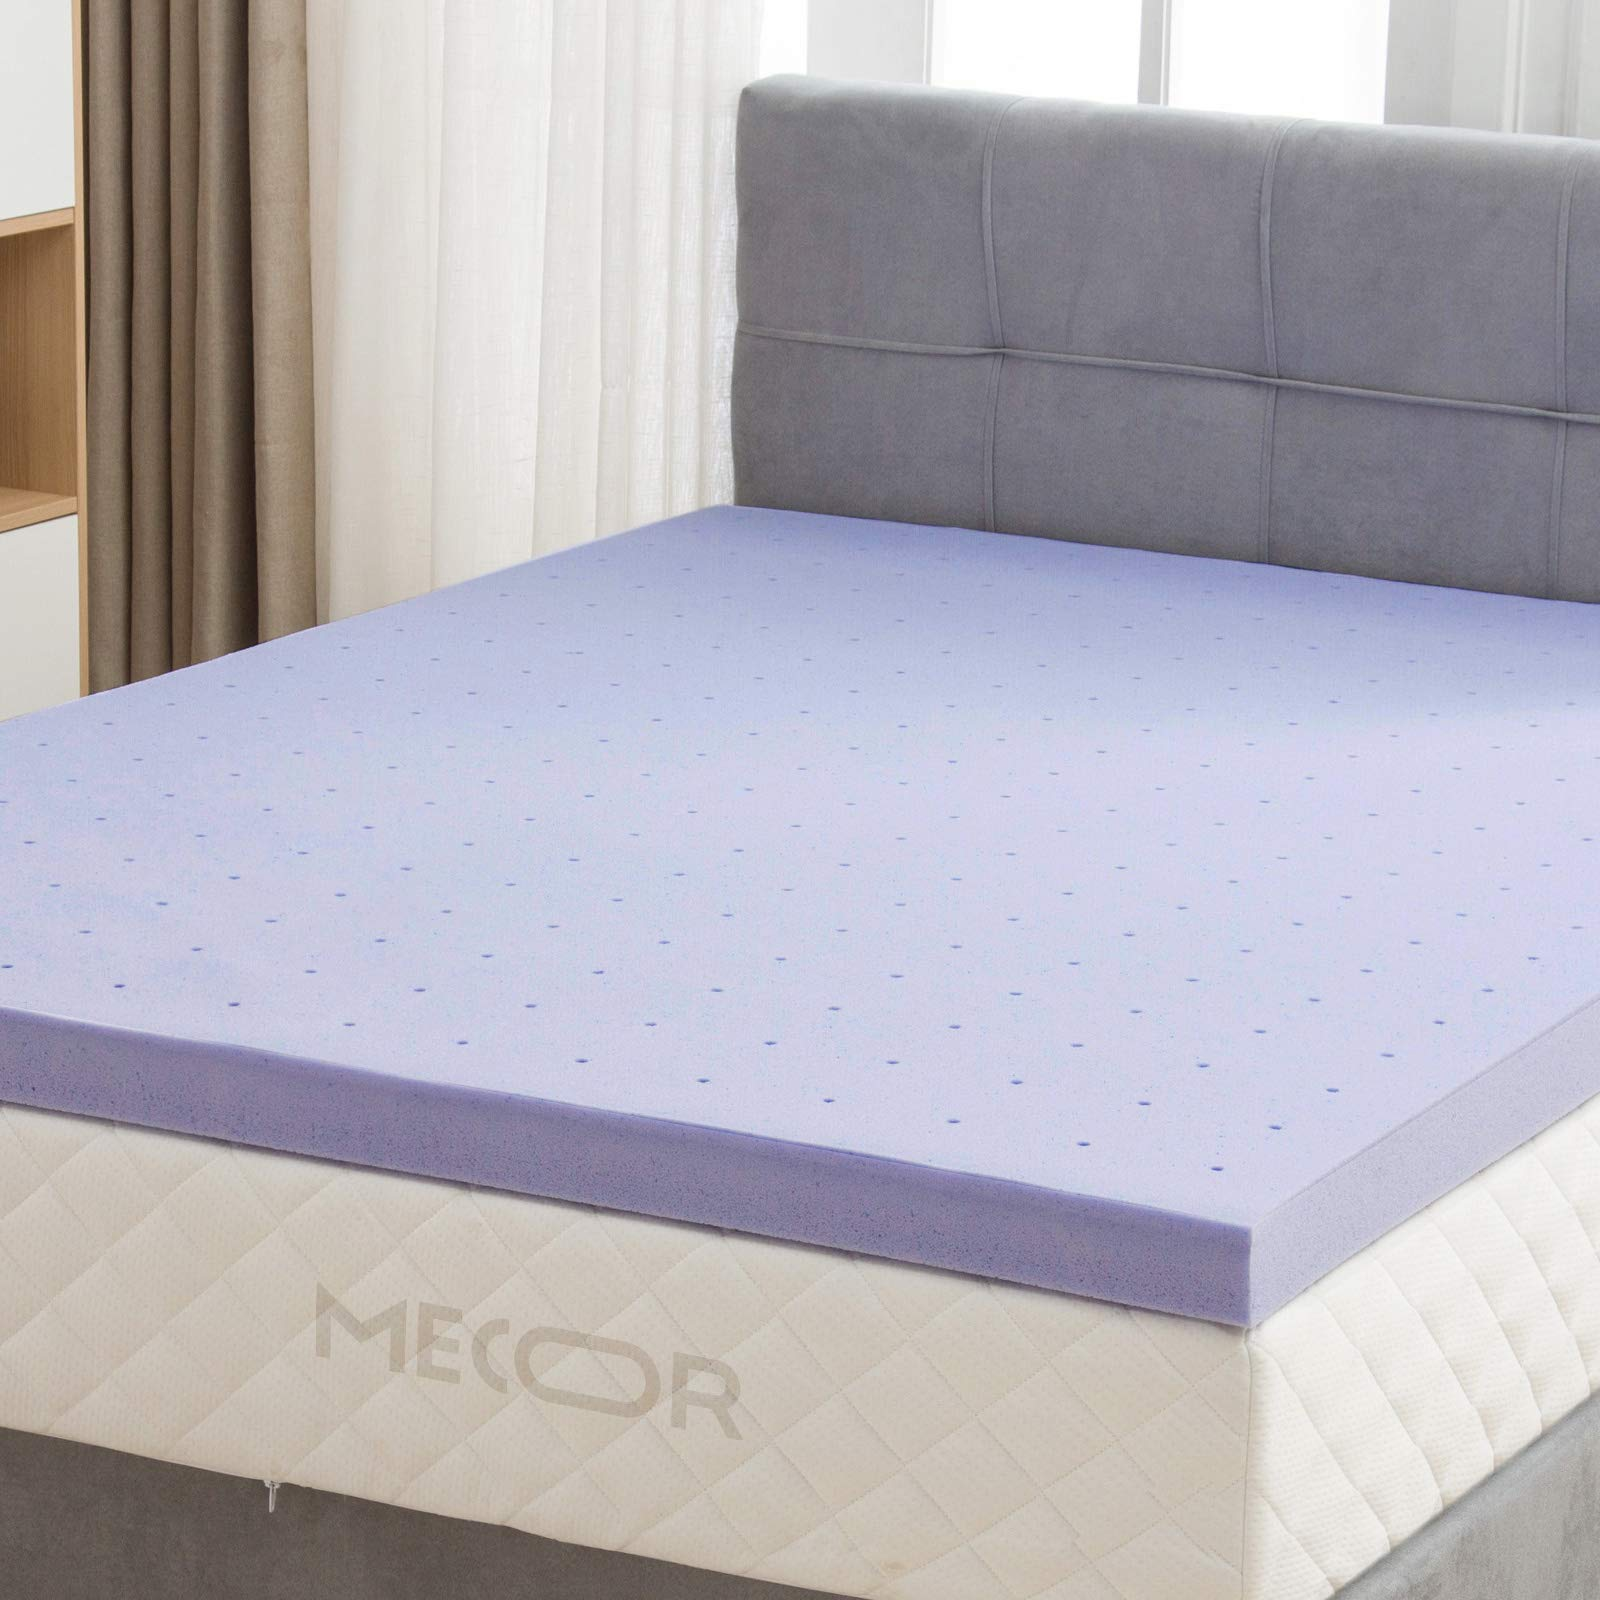 mecor 2 Inch 2'' Mattress Topper Queen, Ventilated Gel Infused Memory Foam Mattress Topper with CertiPUR-US Certified, Medium Firm Luxury Premium Foam, Cloud-Like Soft by mecor